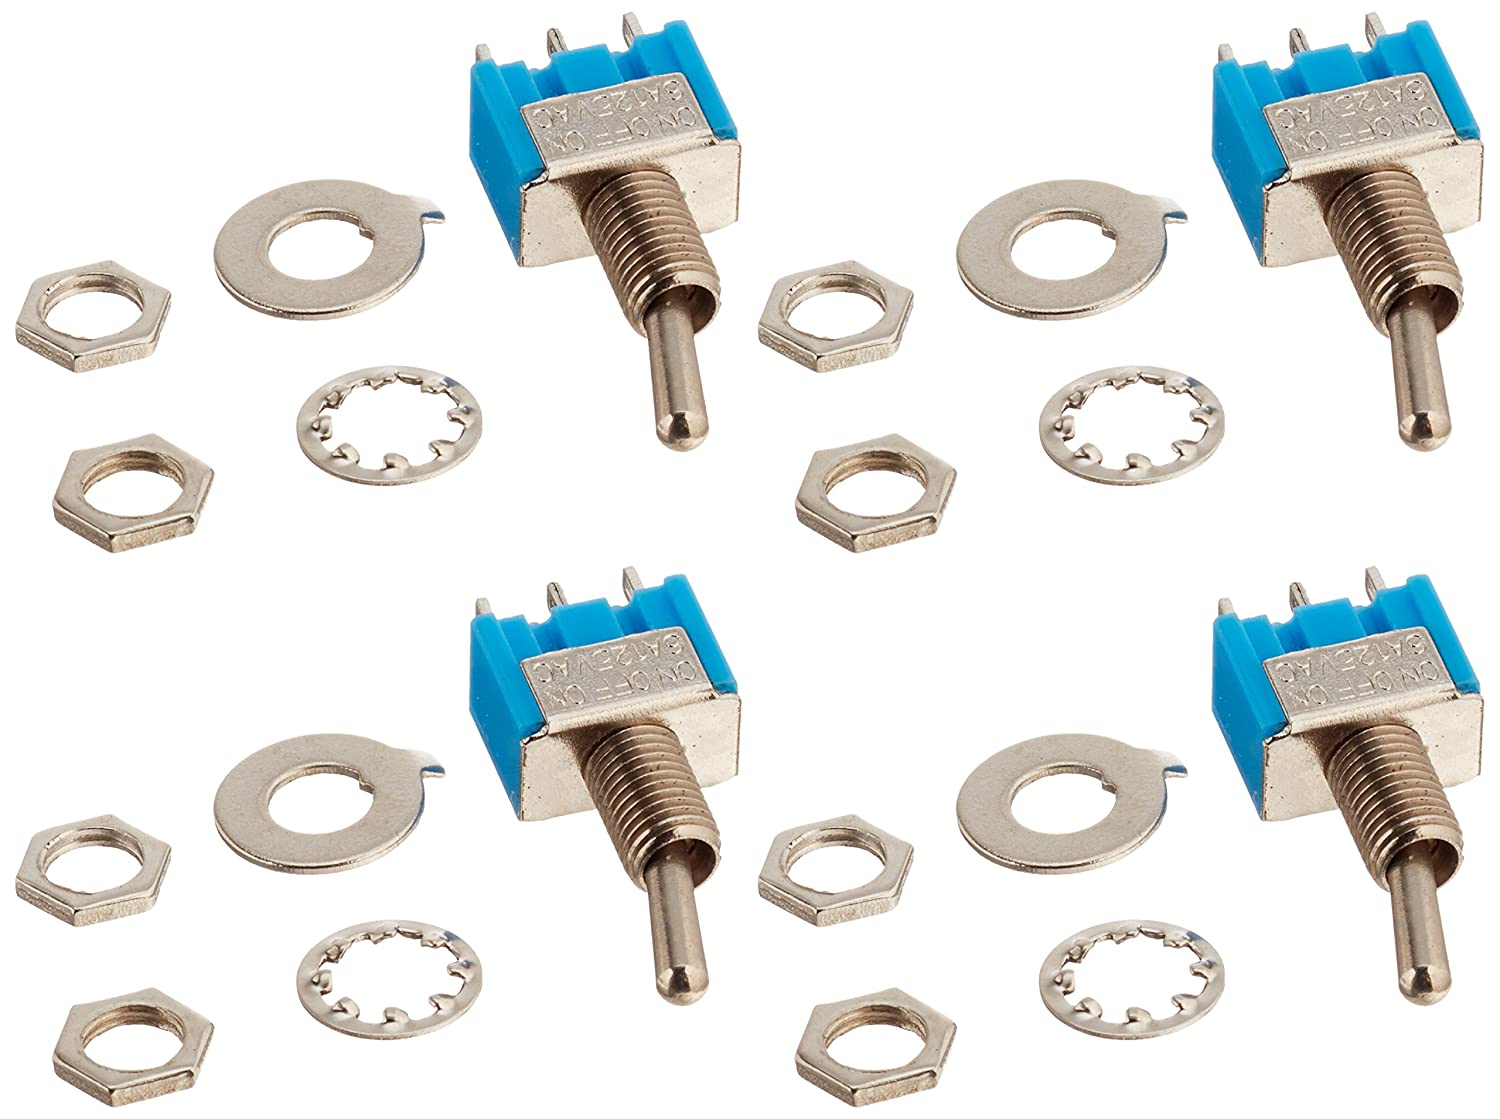 URBEST 4Pcs AC 125V 6A 3 Pin SPDT On/Off/On 3 Position Mini Toggle Switch Blue